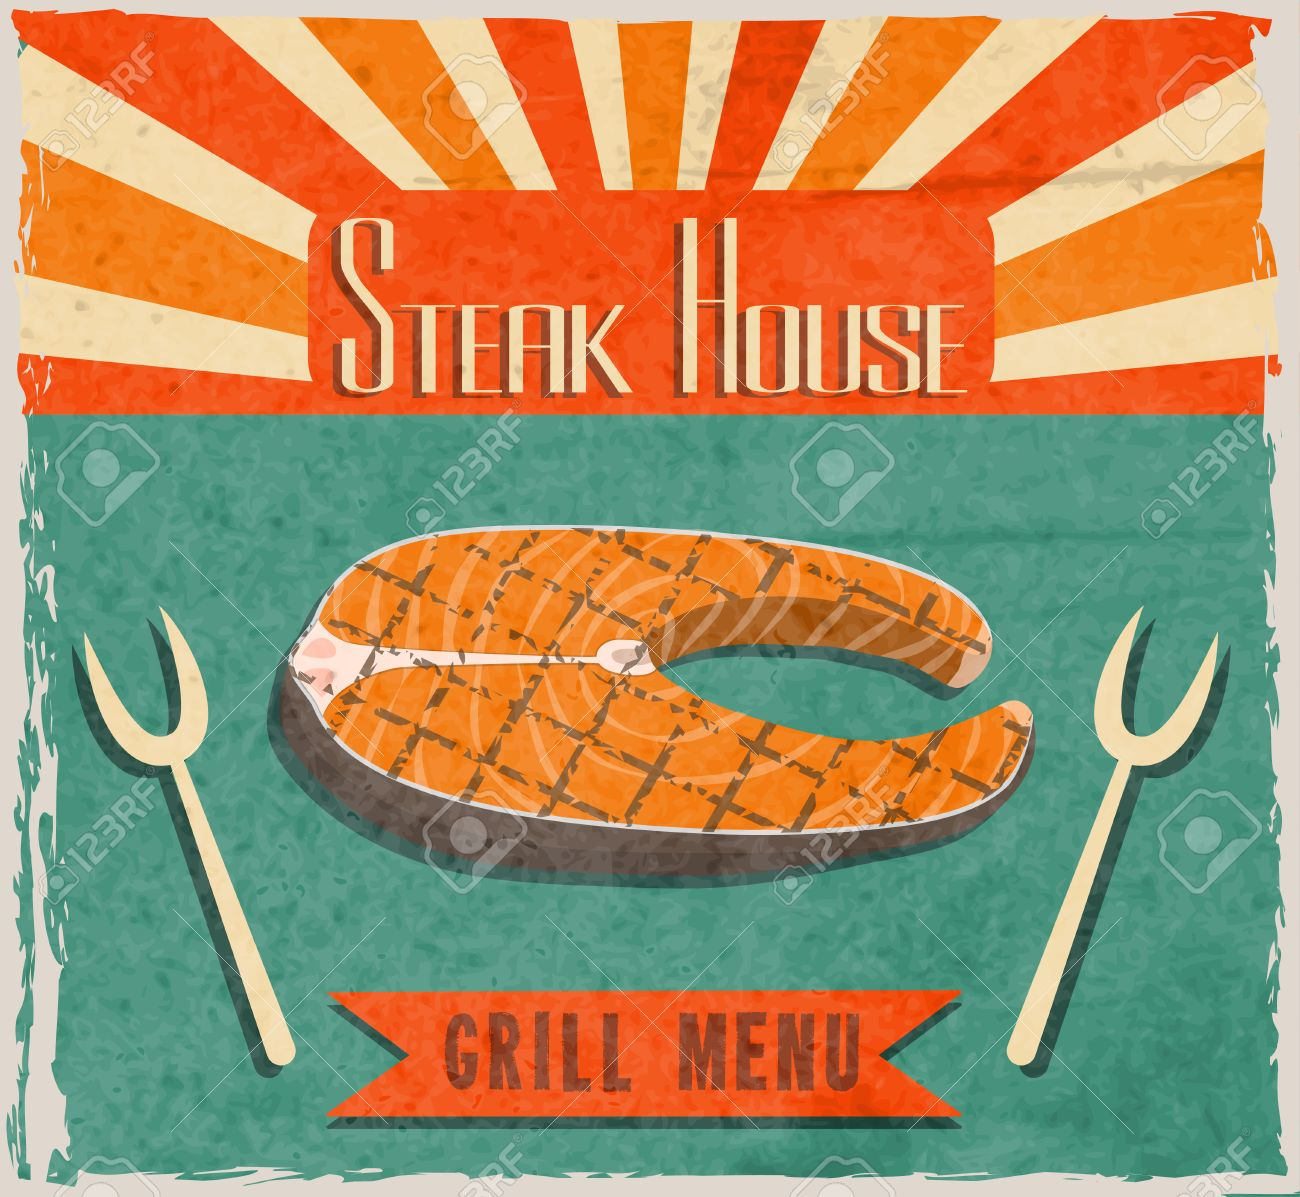 Barbecue Retro Vintage Grill Restaurant Poster With Fish Steak Royalty Free Cliparts Vectors And Stock Illustration Image 27942091